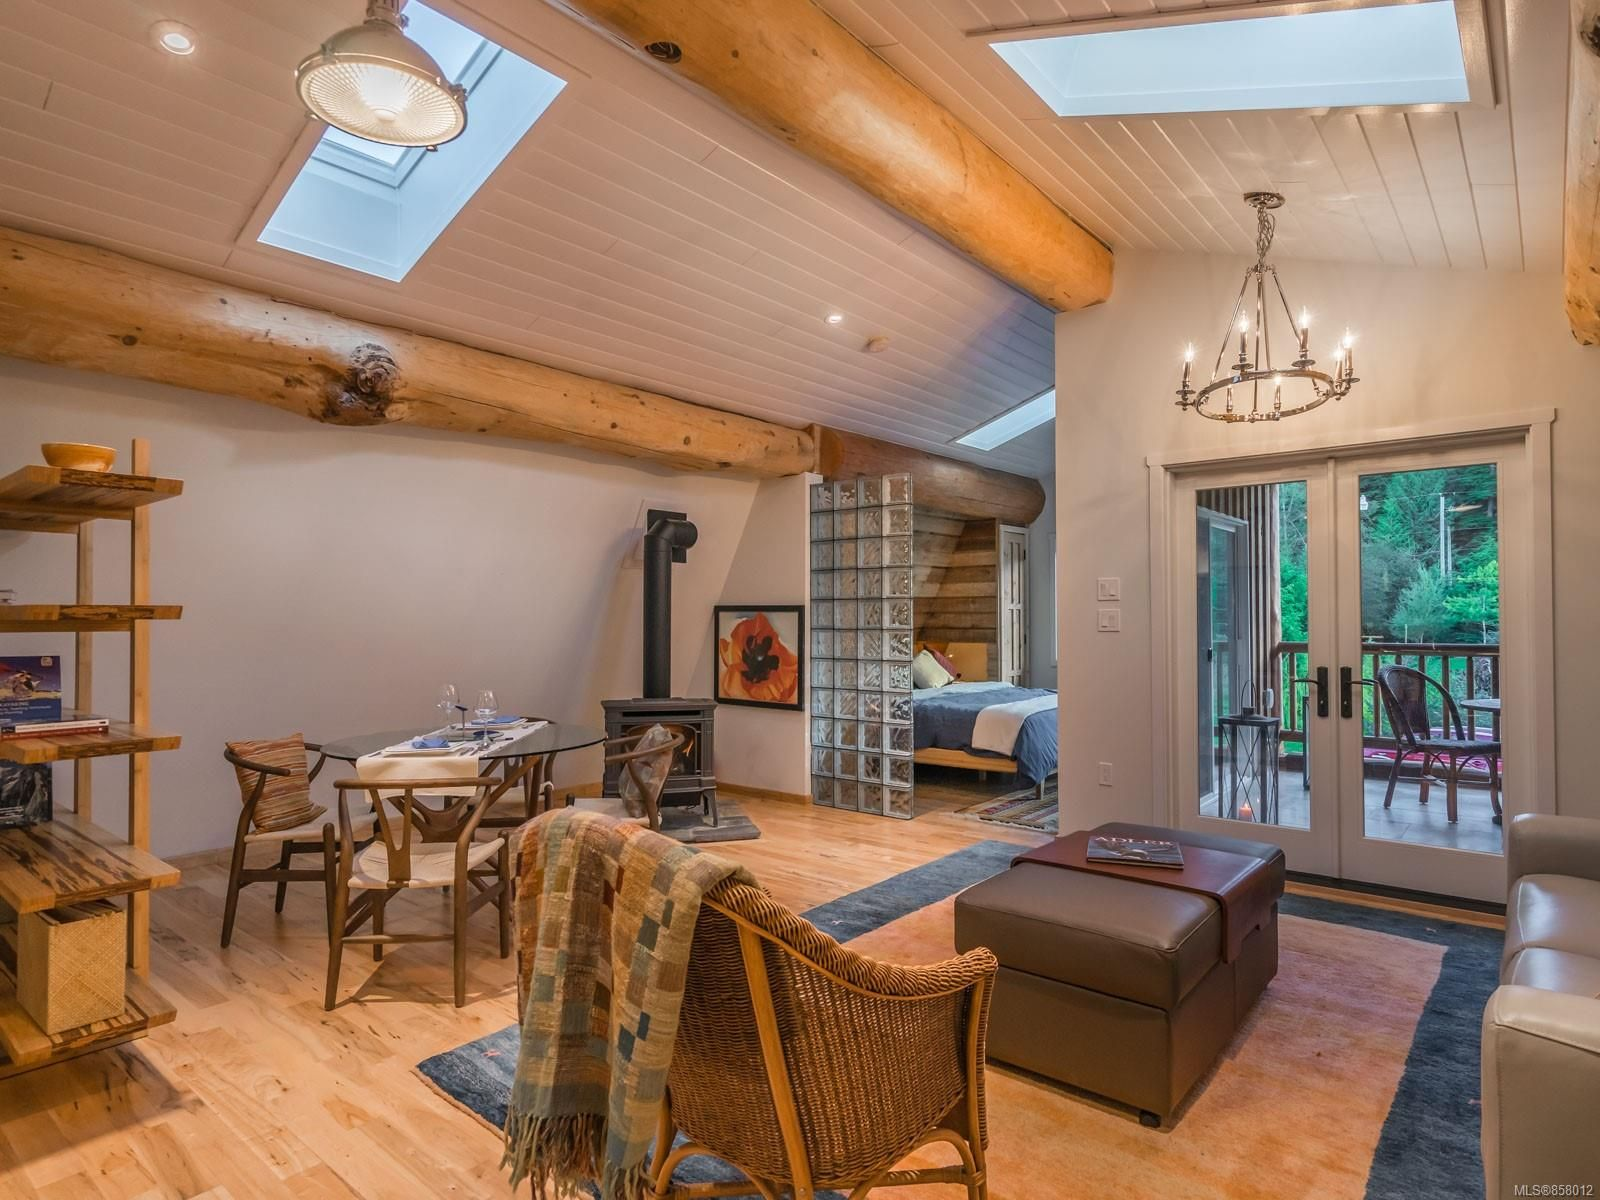 Photo 52: Photos: 6030 MINE Rd in : NI Port McNeill House for sale (North Island)  : MLS®# 858012